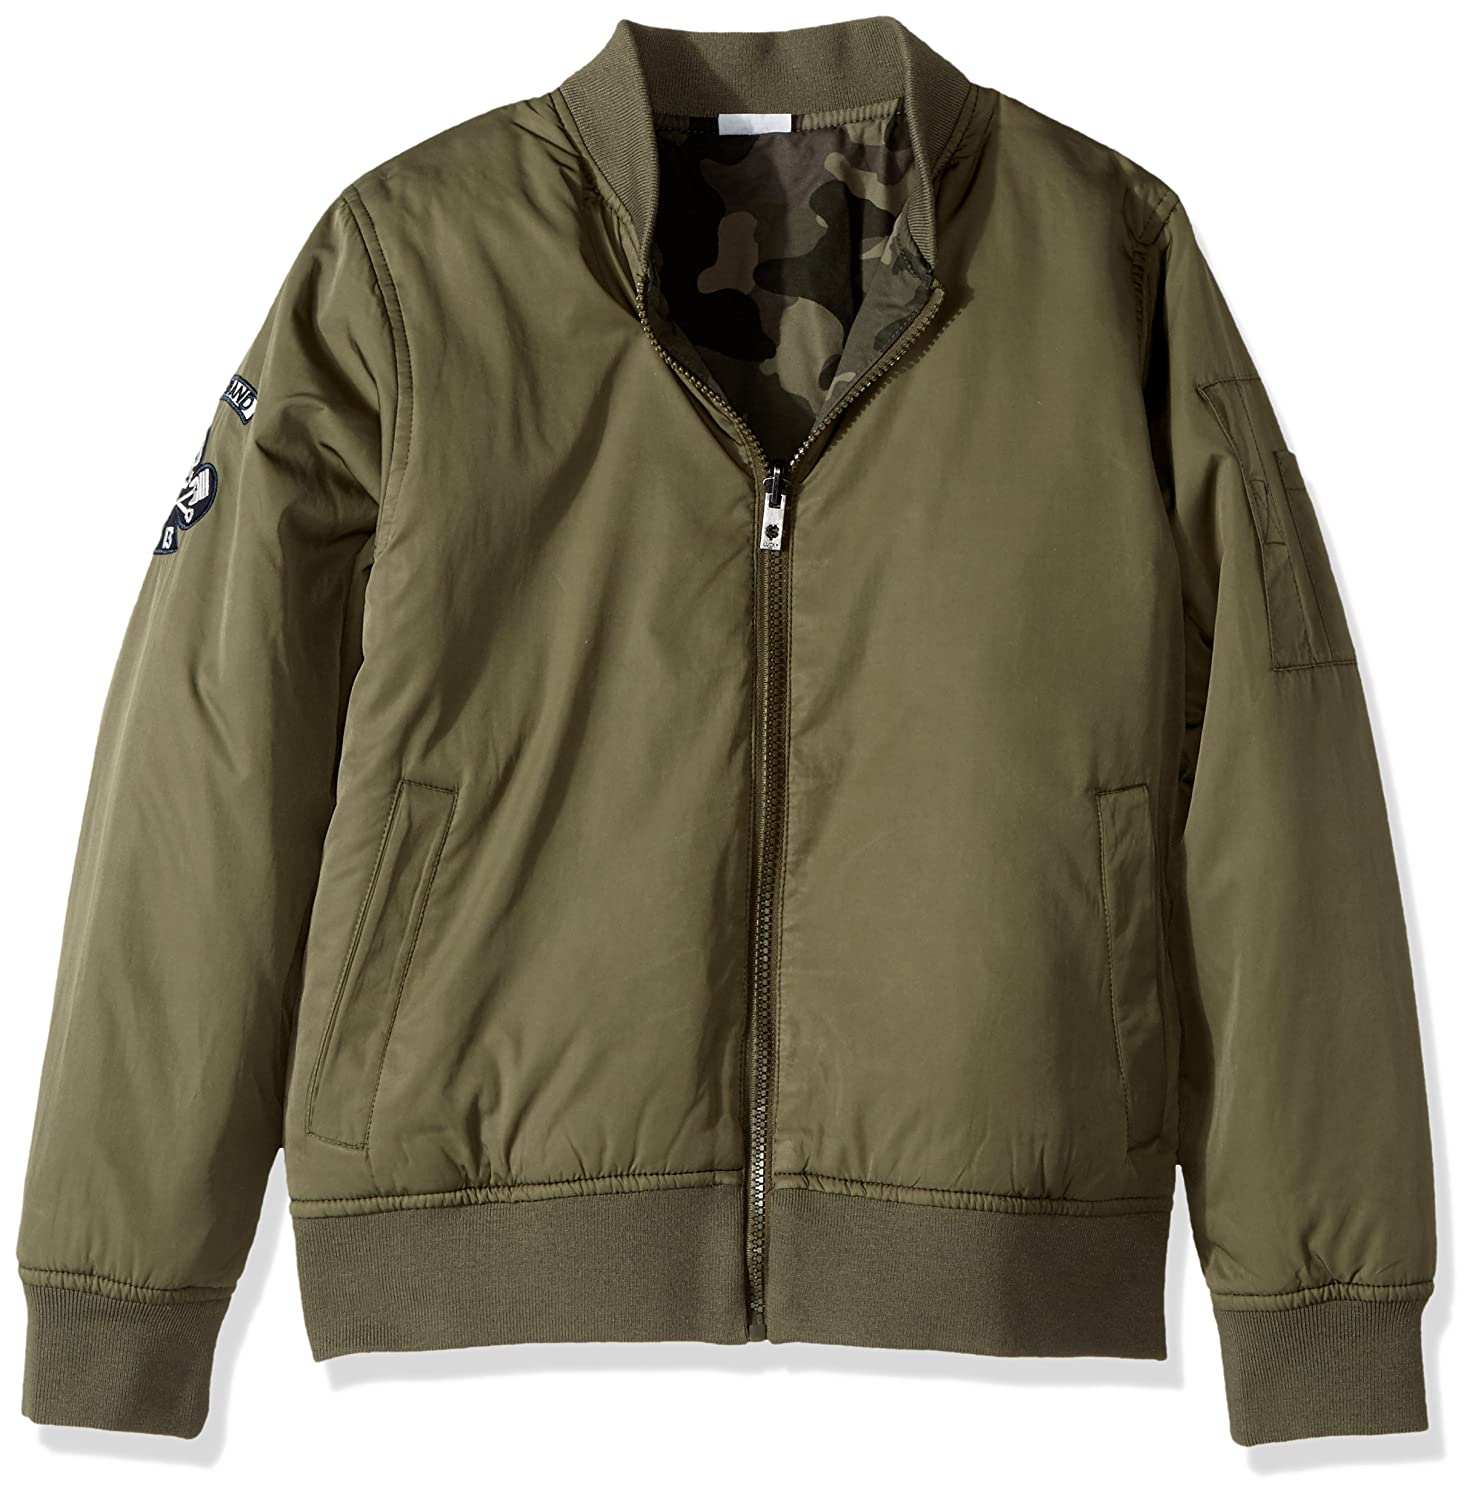 6da282a96814 Amazon.com  Lucky Brand Boys  Bomber Reversible Jacket  Clothing